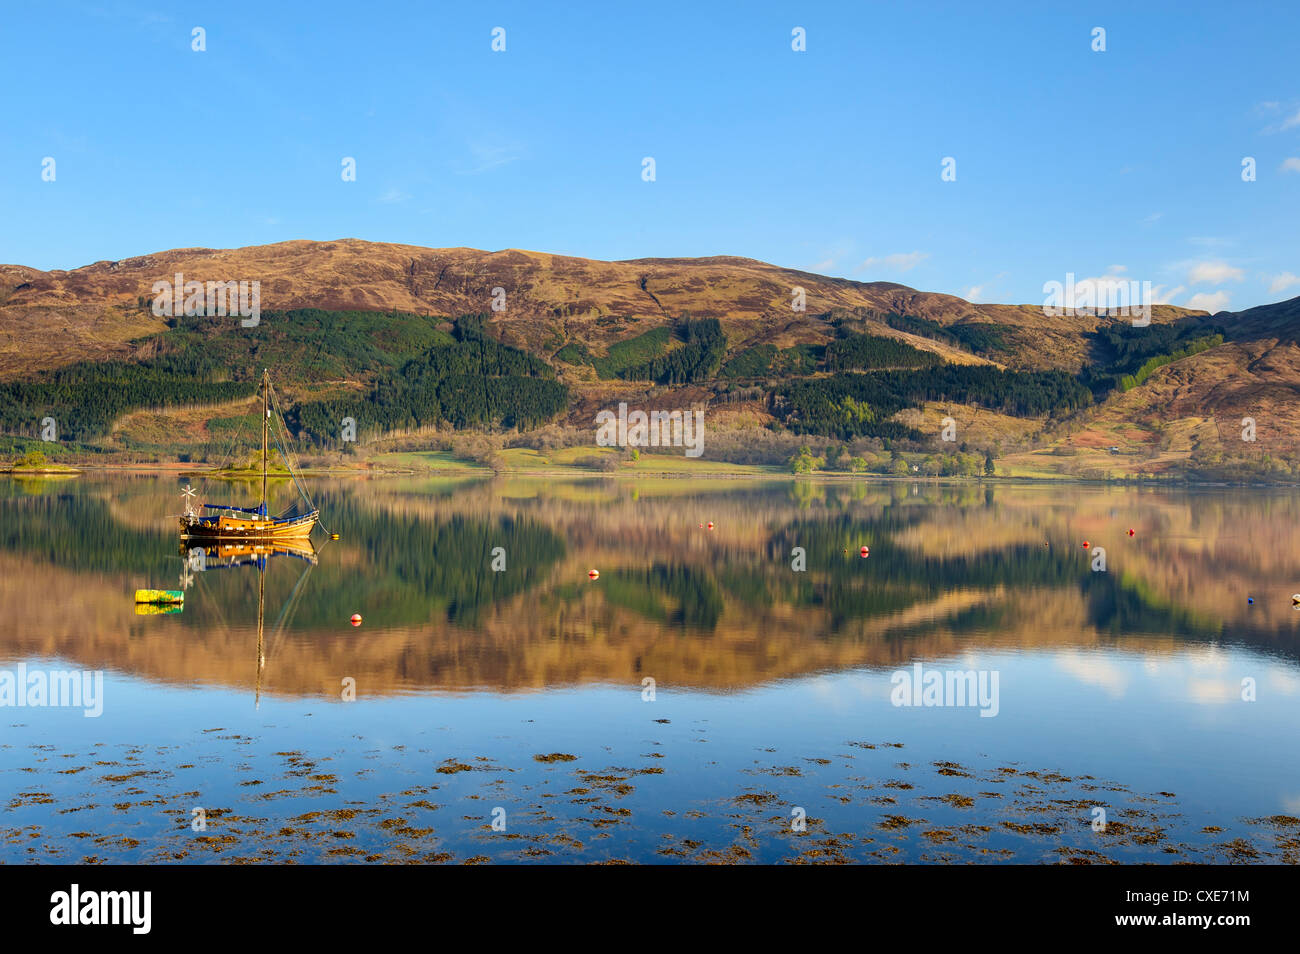 Loch Leven reflections, Glencoe village, Highlands, Scotland, United Kingdom, Europe - Stock Image